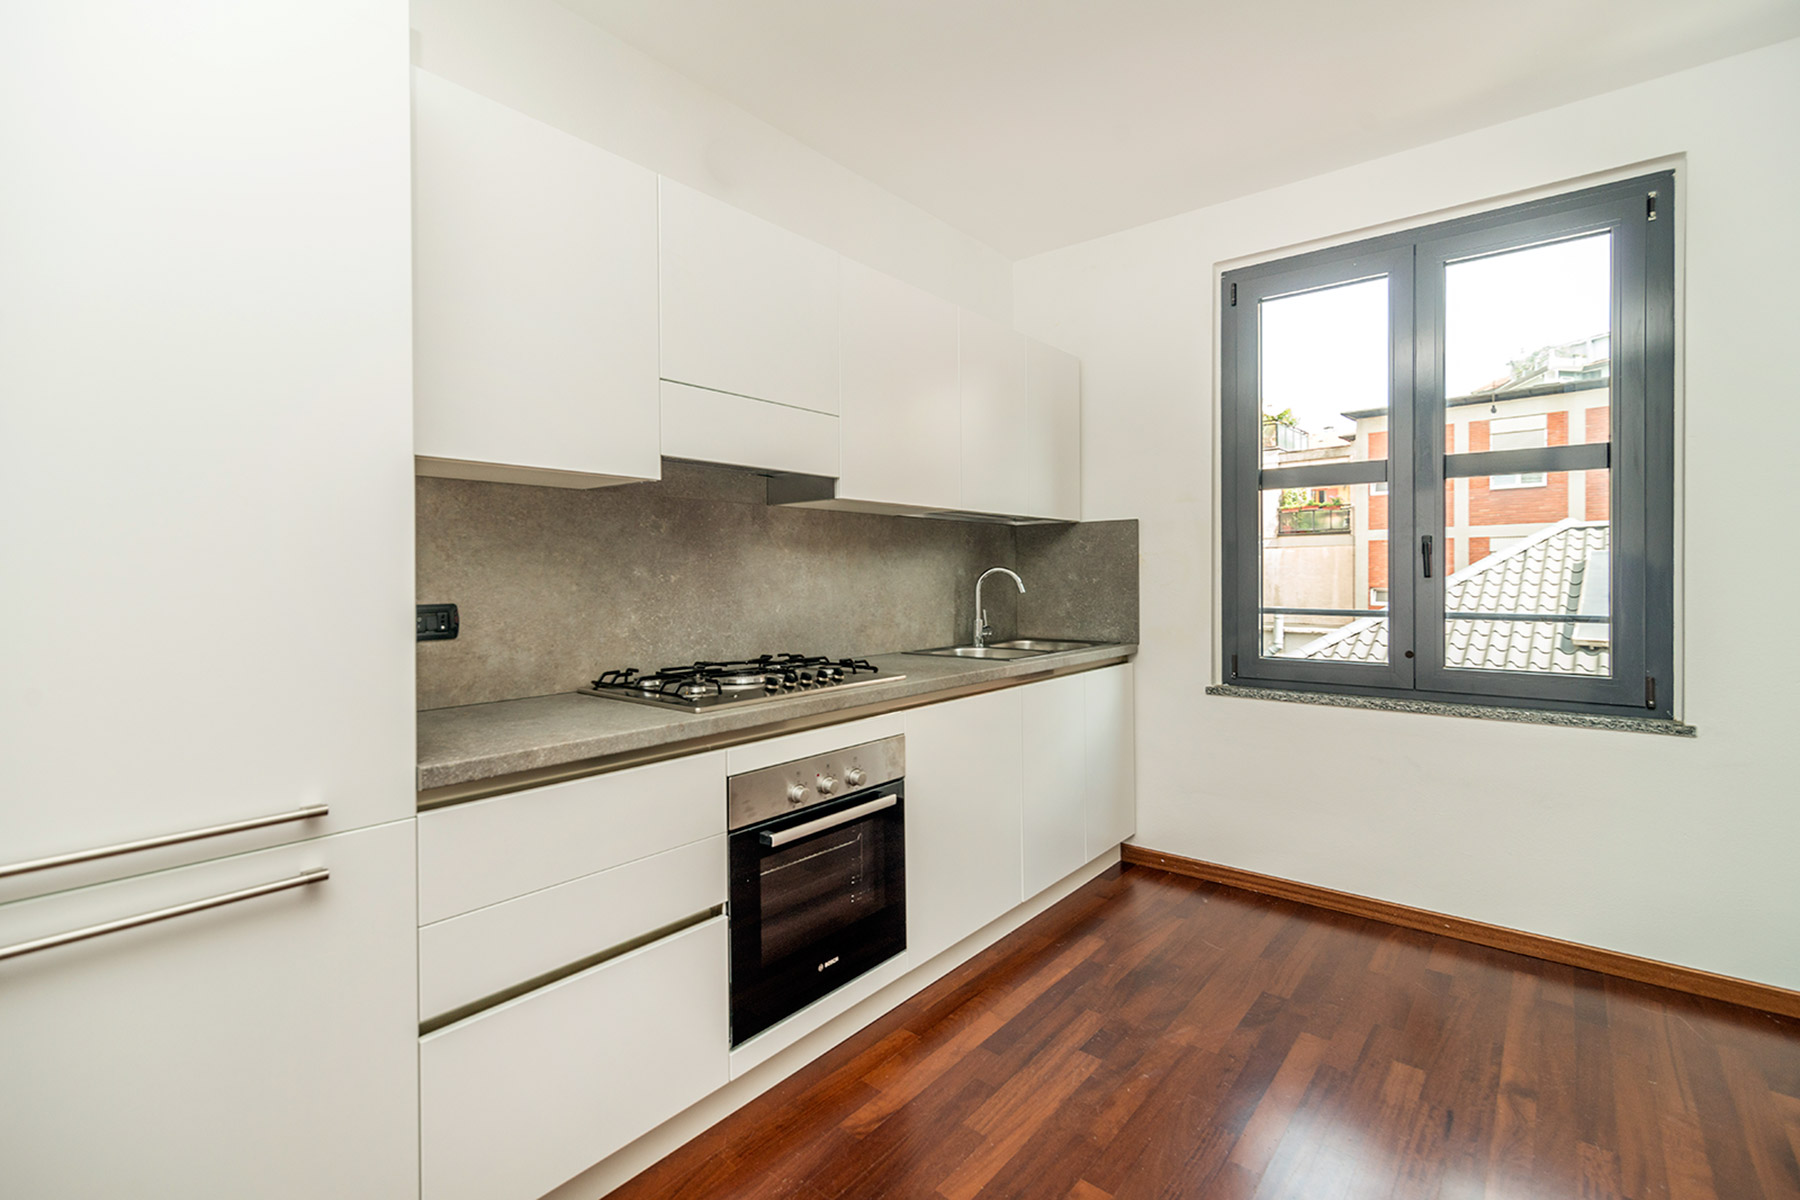 Additional photo for property listing at Particular apartament in exclusive contest viale Abruzzi Milano, Milan 20131 Italien